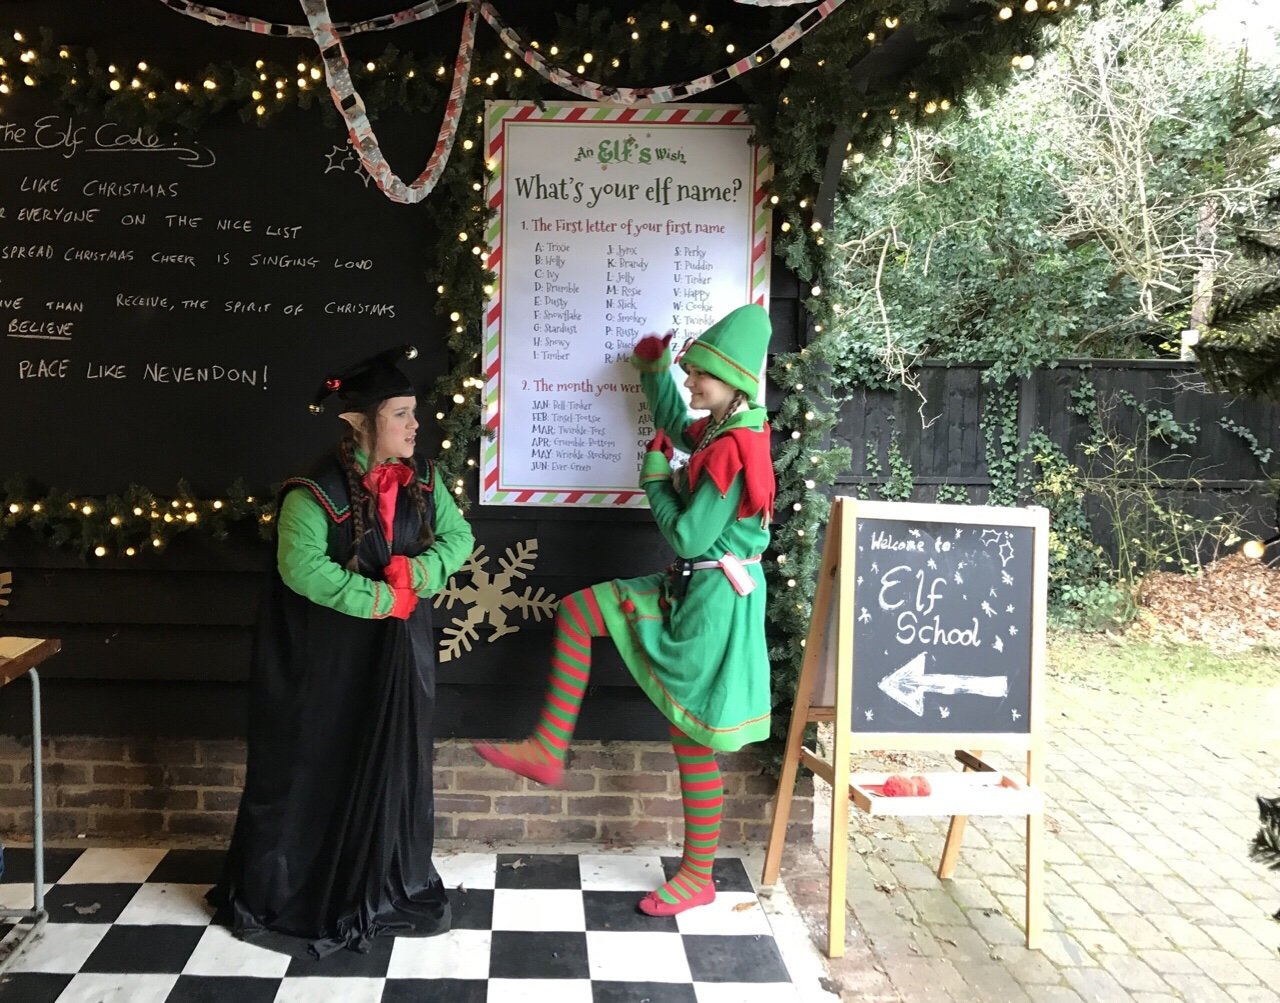 Elf school at An Elf's Wish at Nevendon Manor